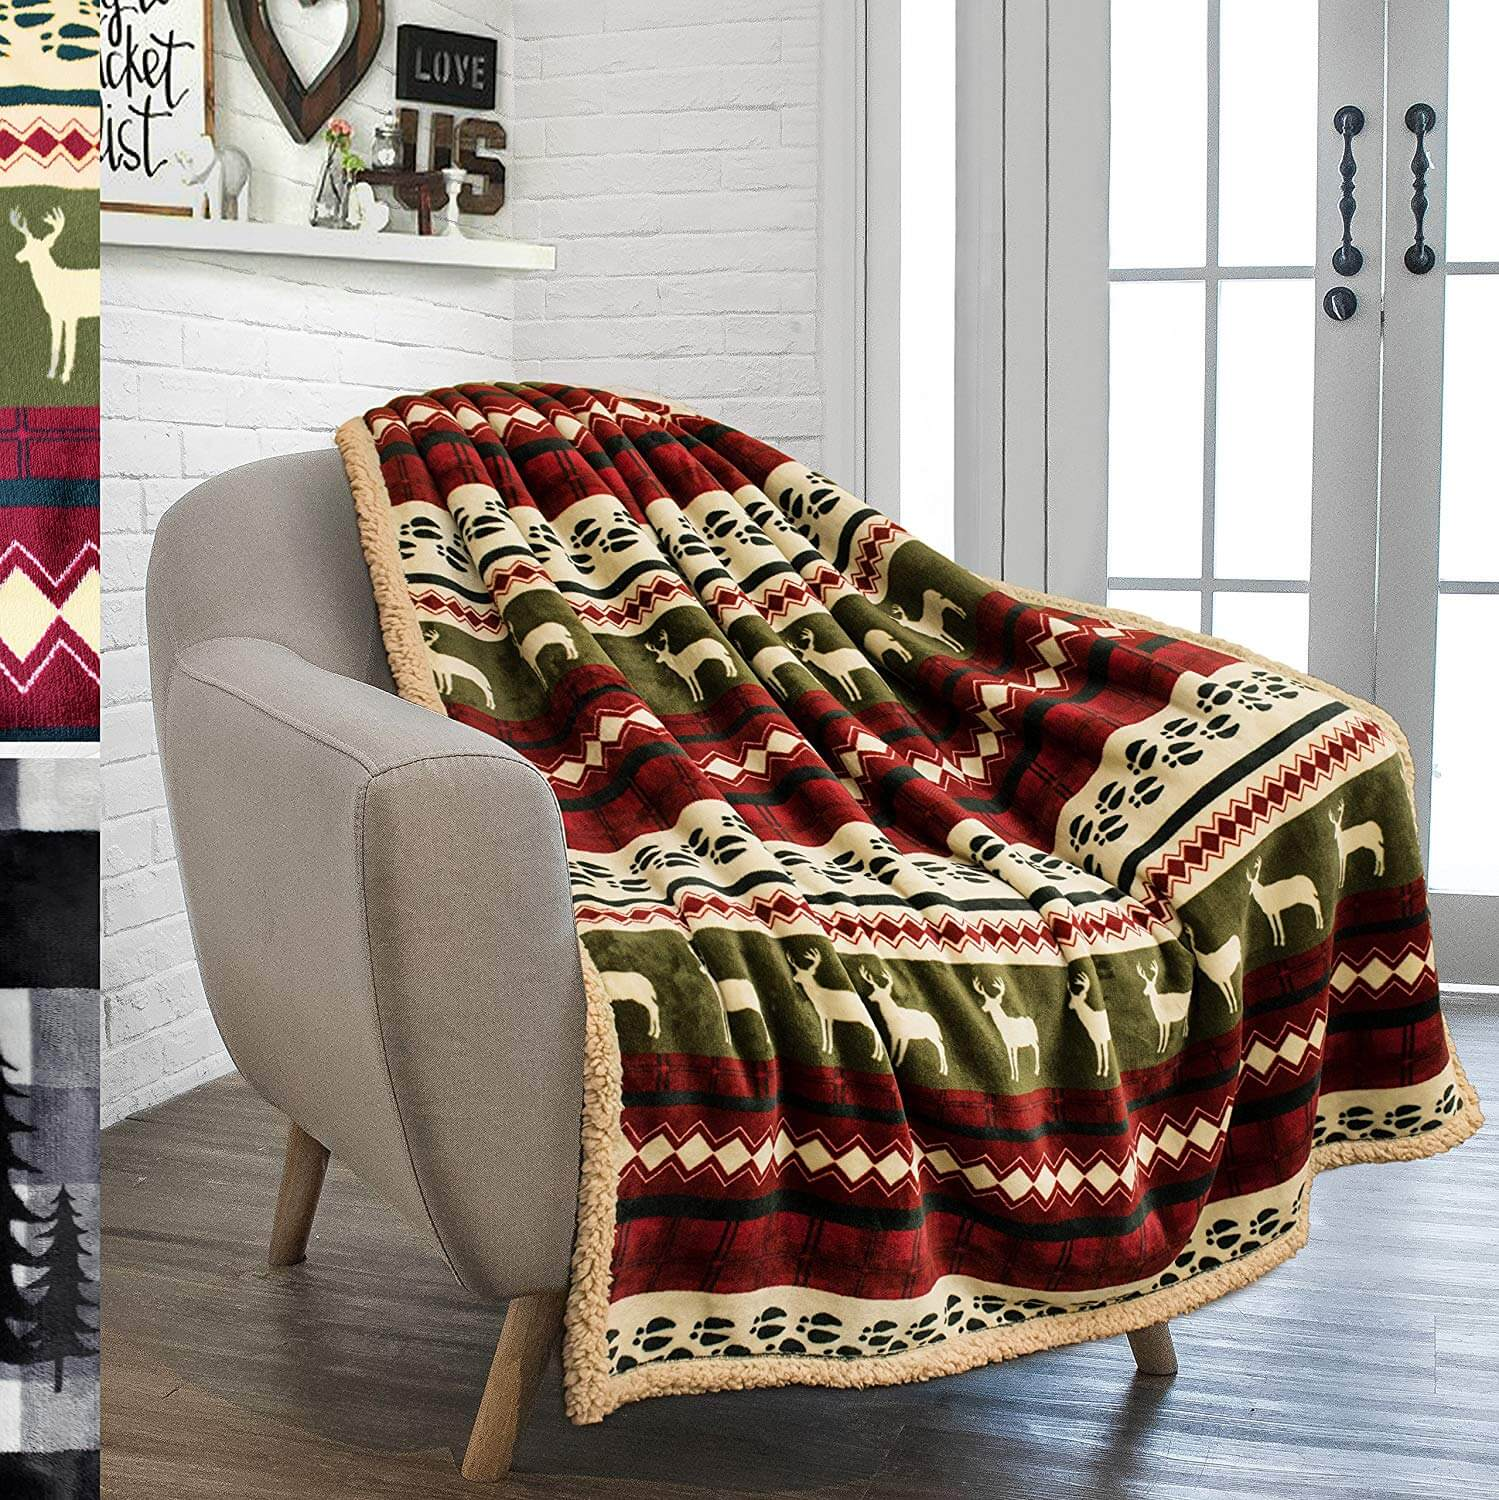 Top 10 Best Super Soft Blankets for Christmas